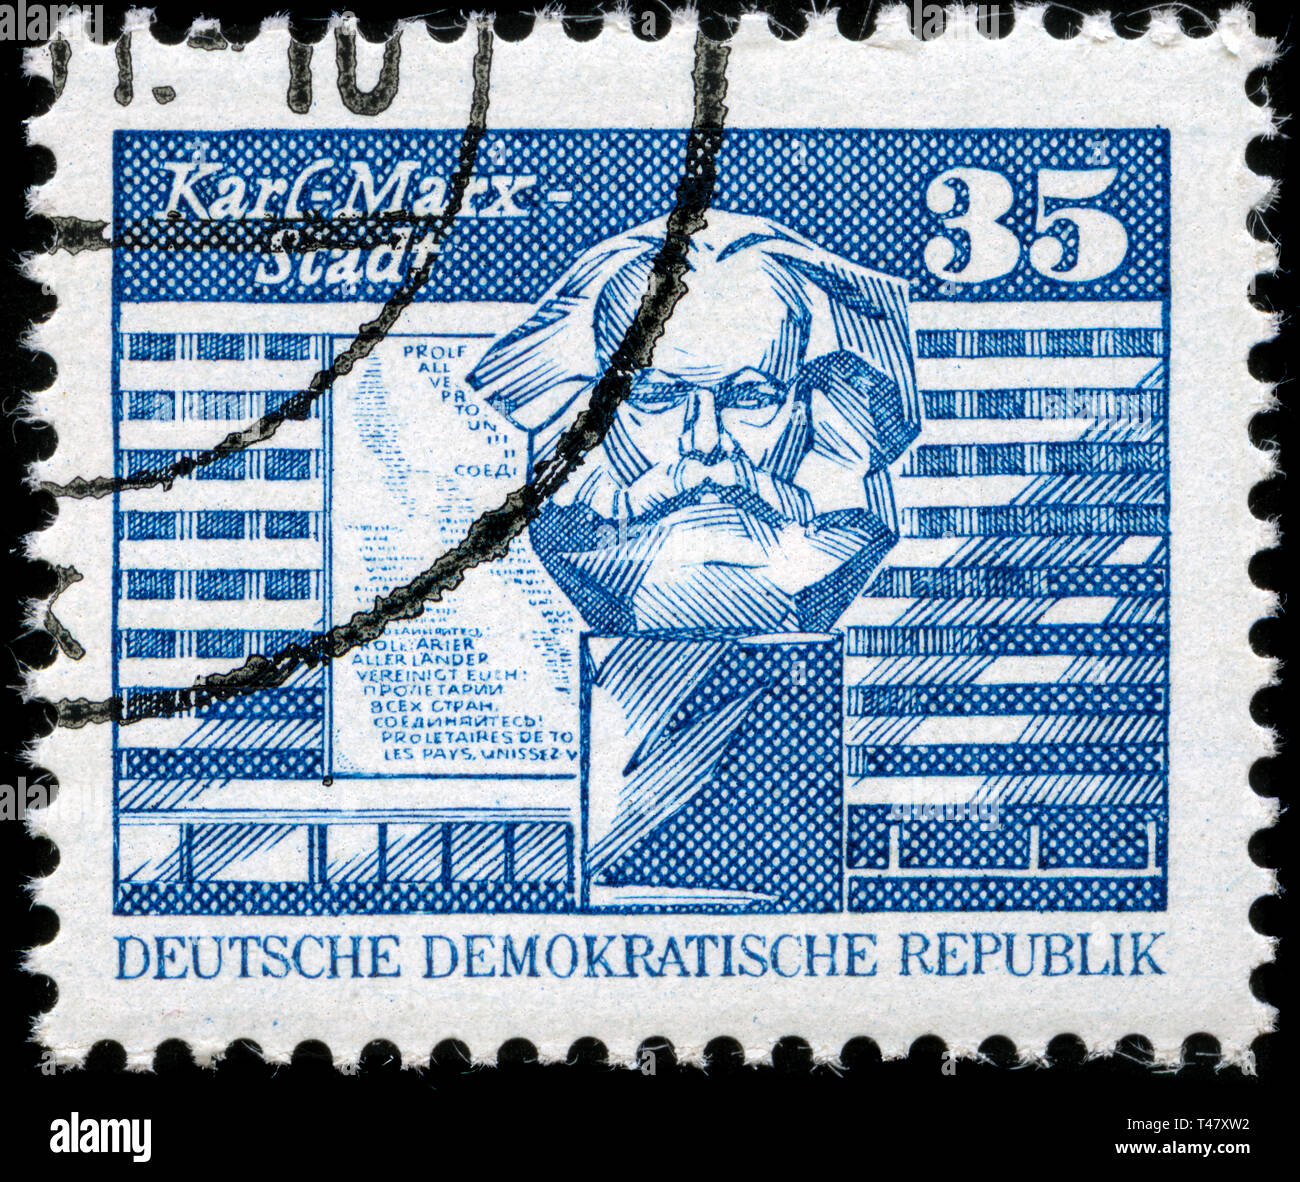 Postage stamp from East Germany (DDR)  in the Construction in the GDR, small format series issued in 1989 - Stock Image